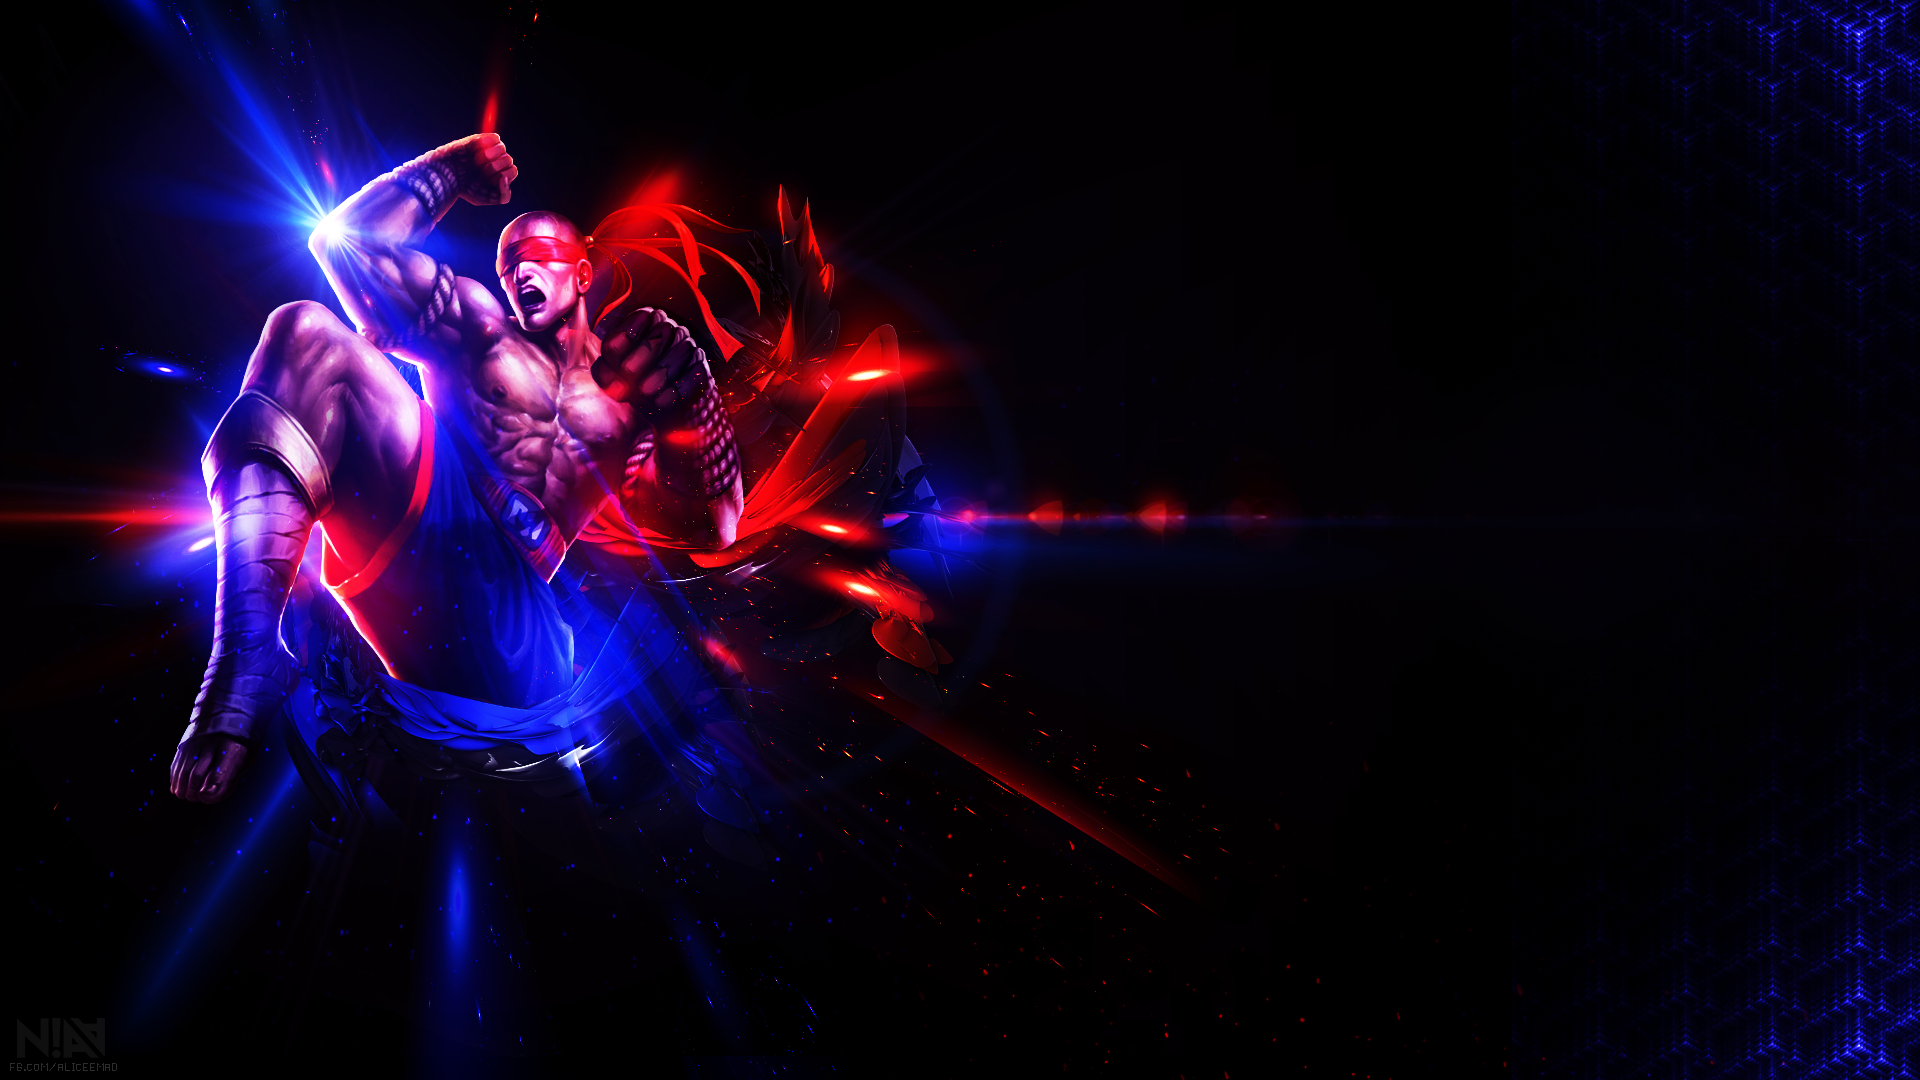 lee sin wallpaper - photo #3